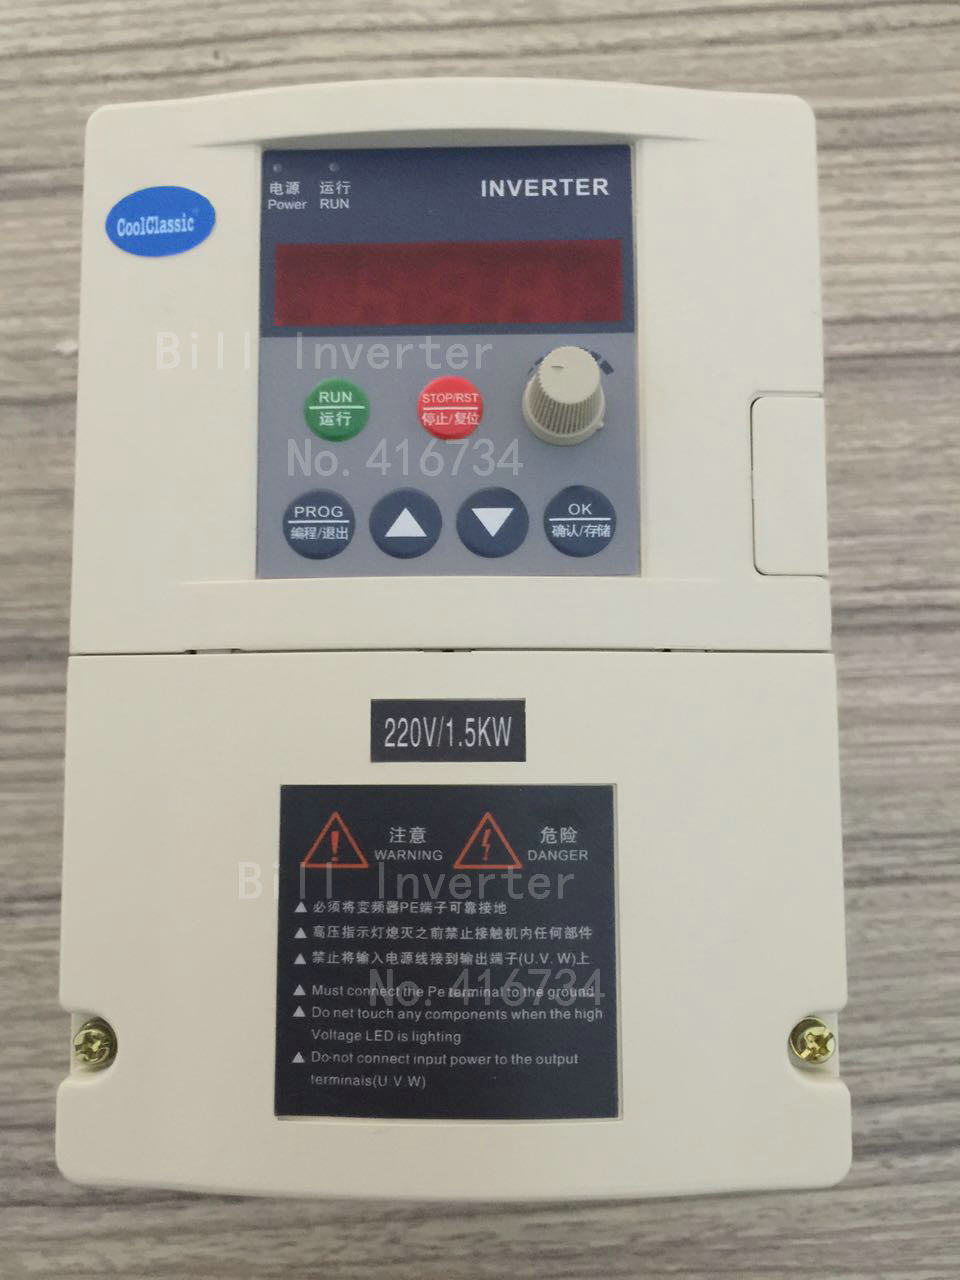 VFD Inverter  CoolClassic ZW-S2015 Inverter  1500w Single phase 220v input three-phase motor with control line